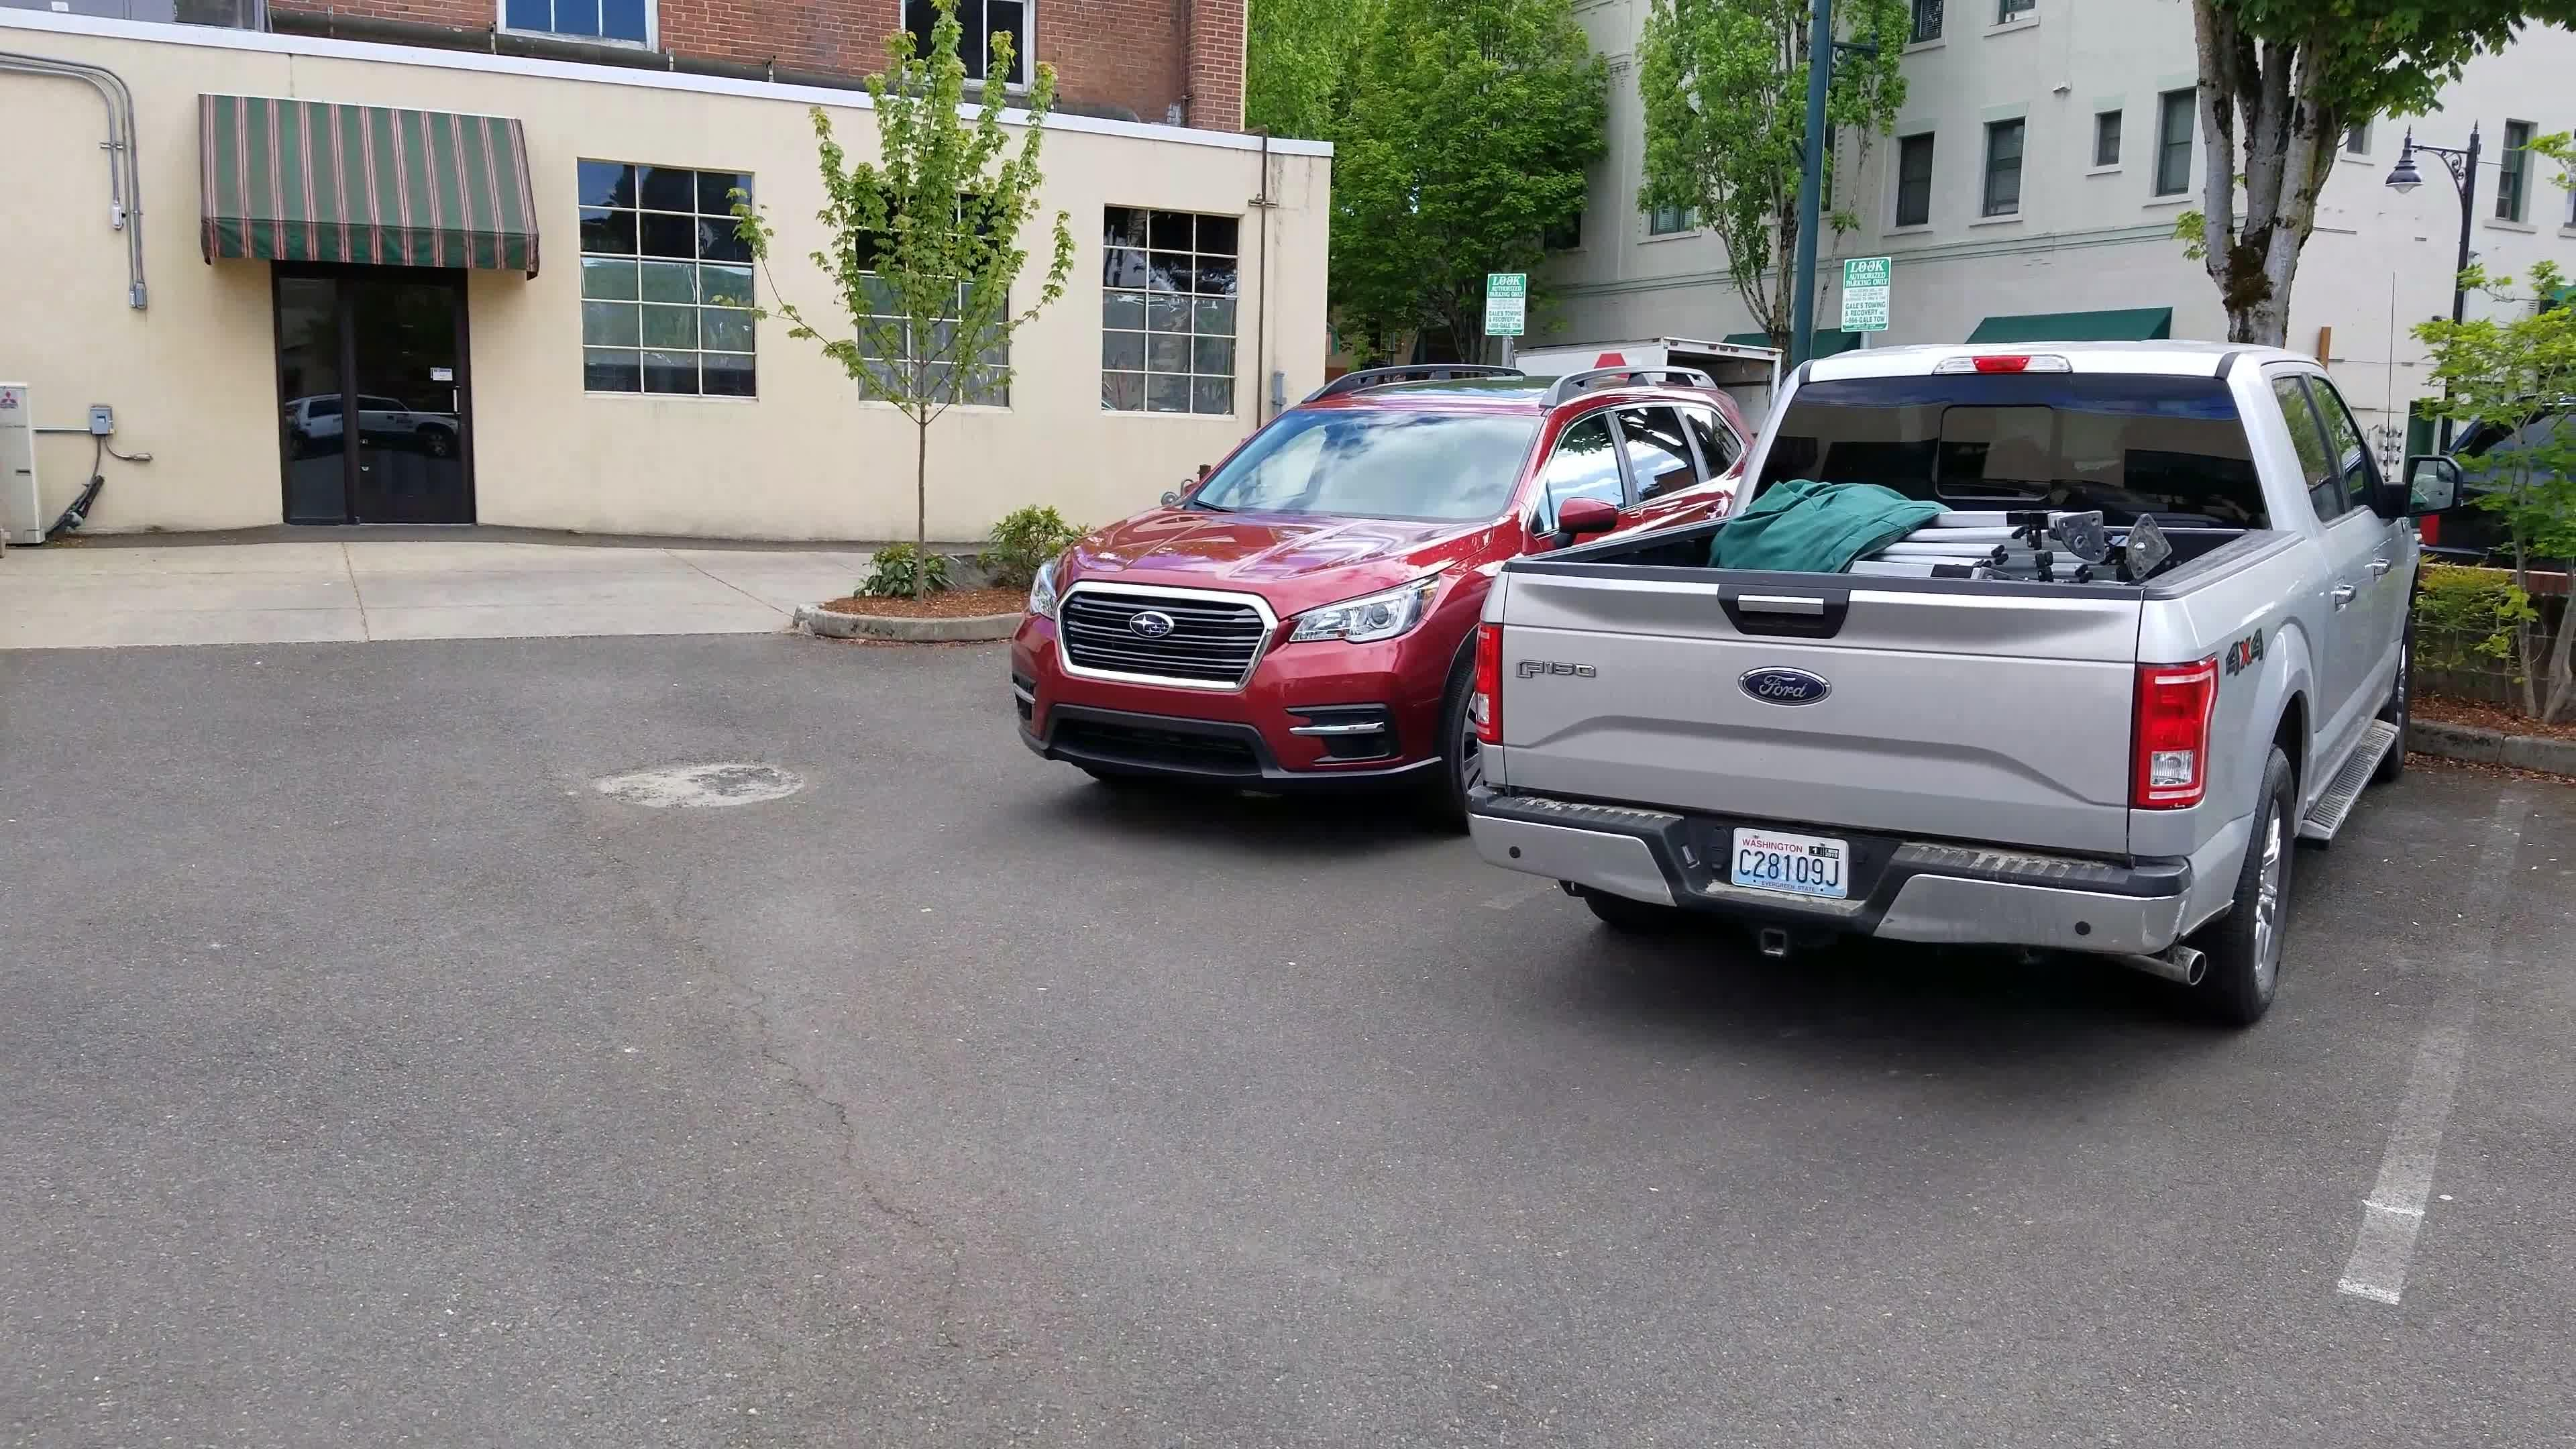 2019 Subaru Ascent vs Pilot, Highlander and CX-9: How they compare on paper